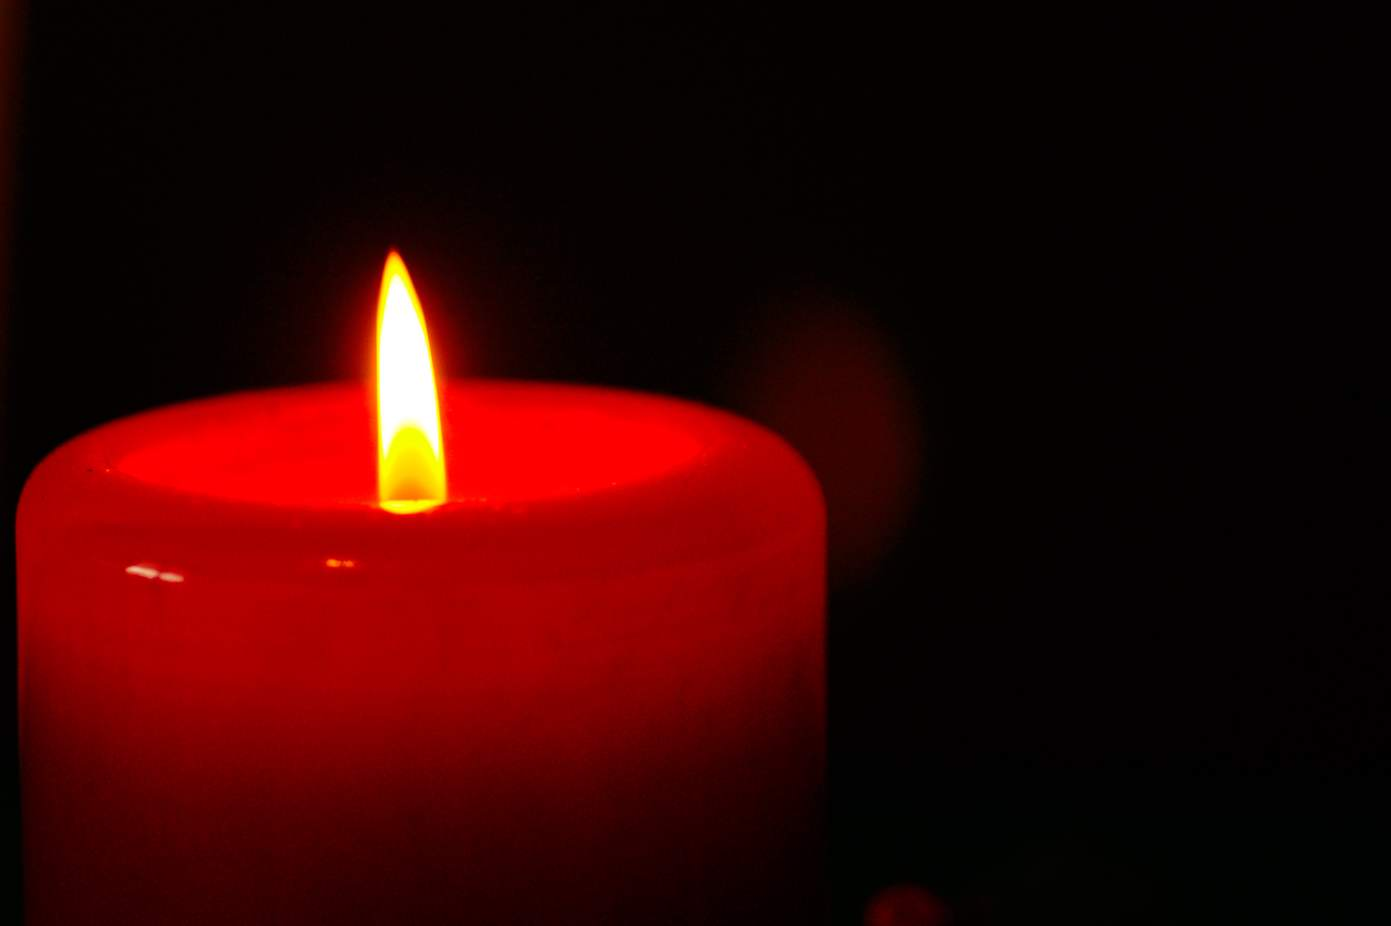 I light a candle and sob quietly in the near darkness for Dr. Ford and others.